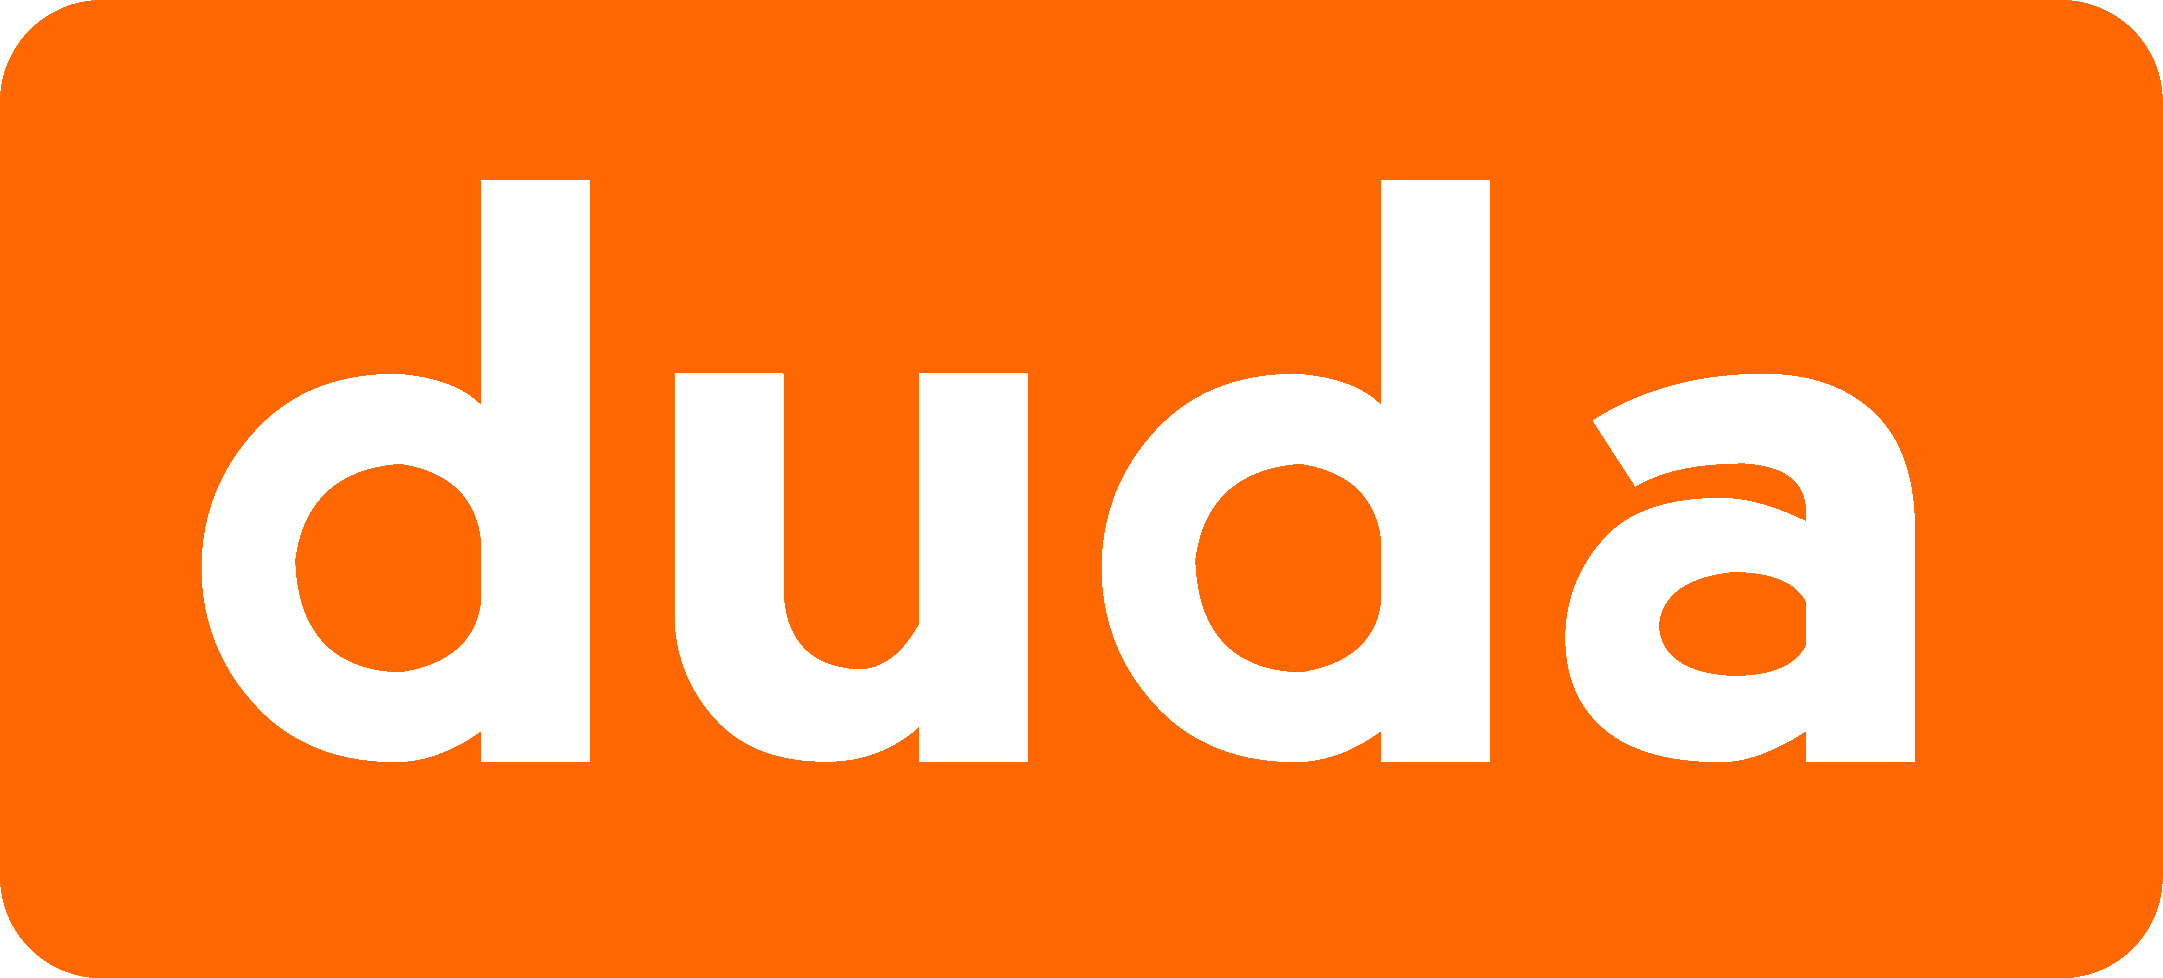 duda website builder logo